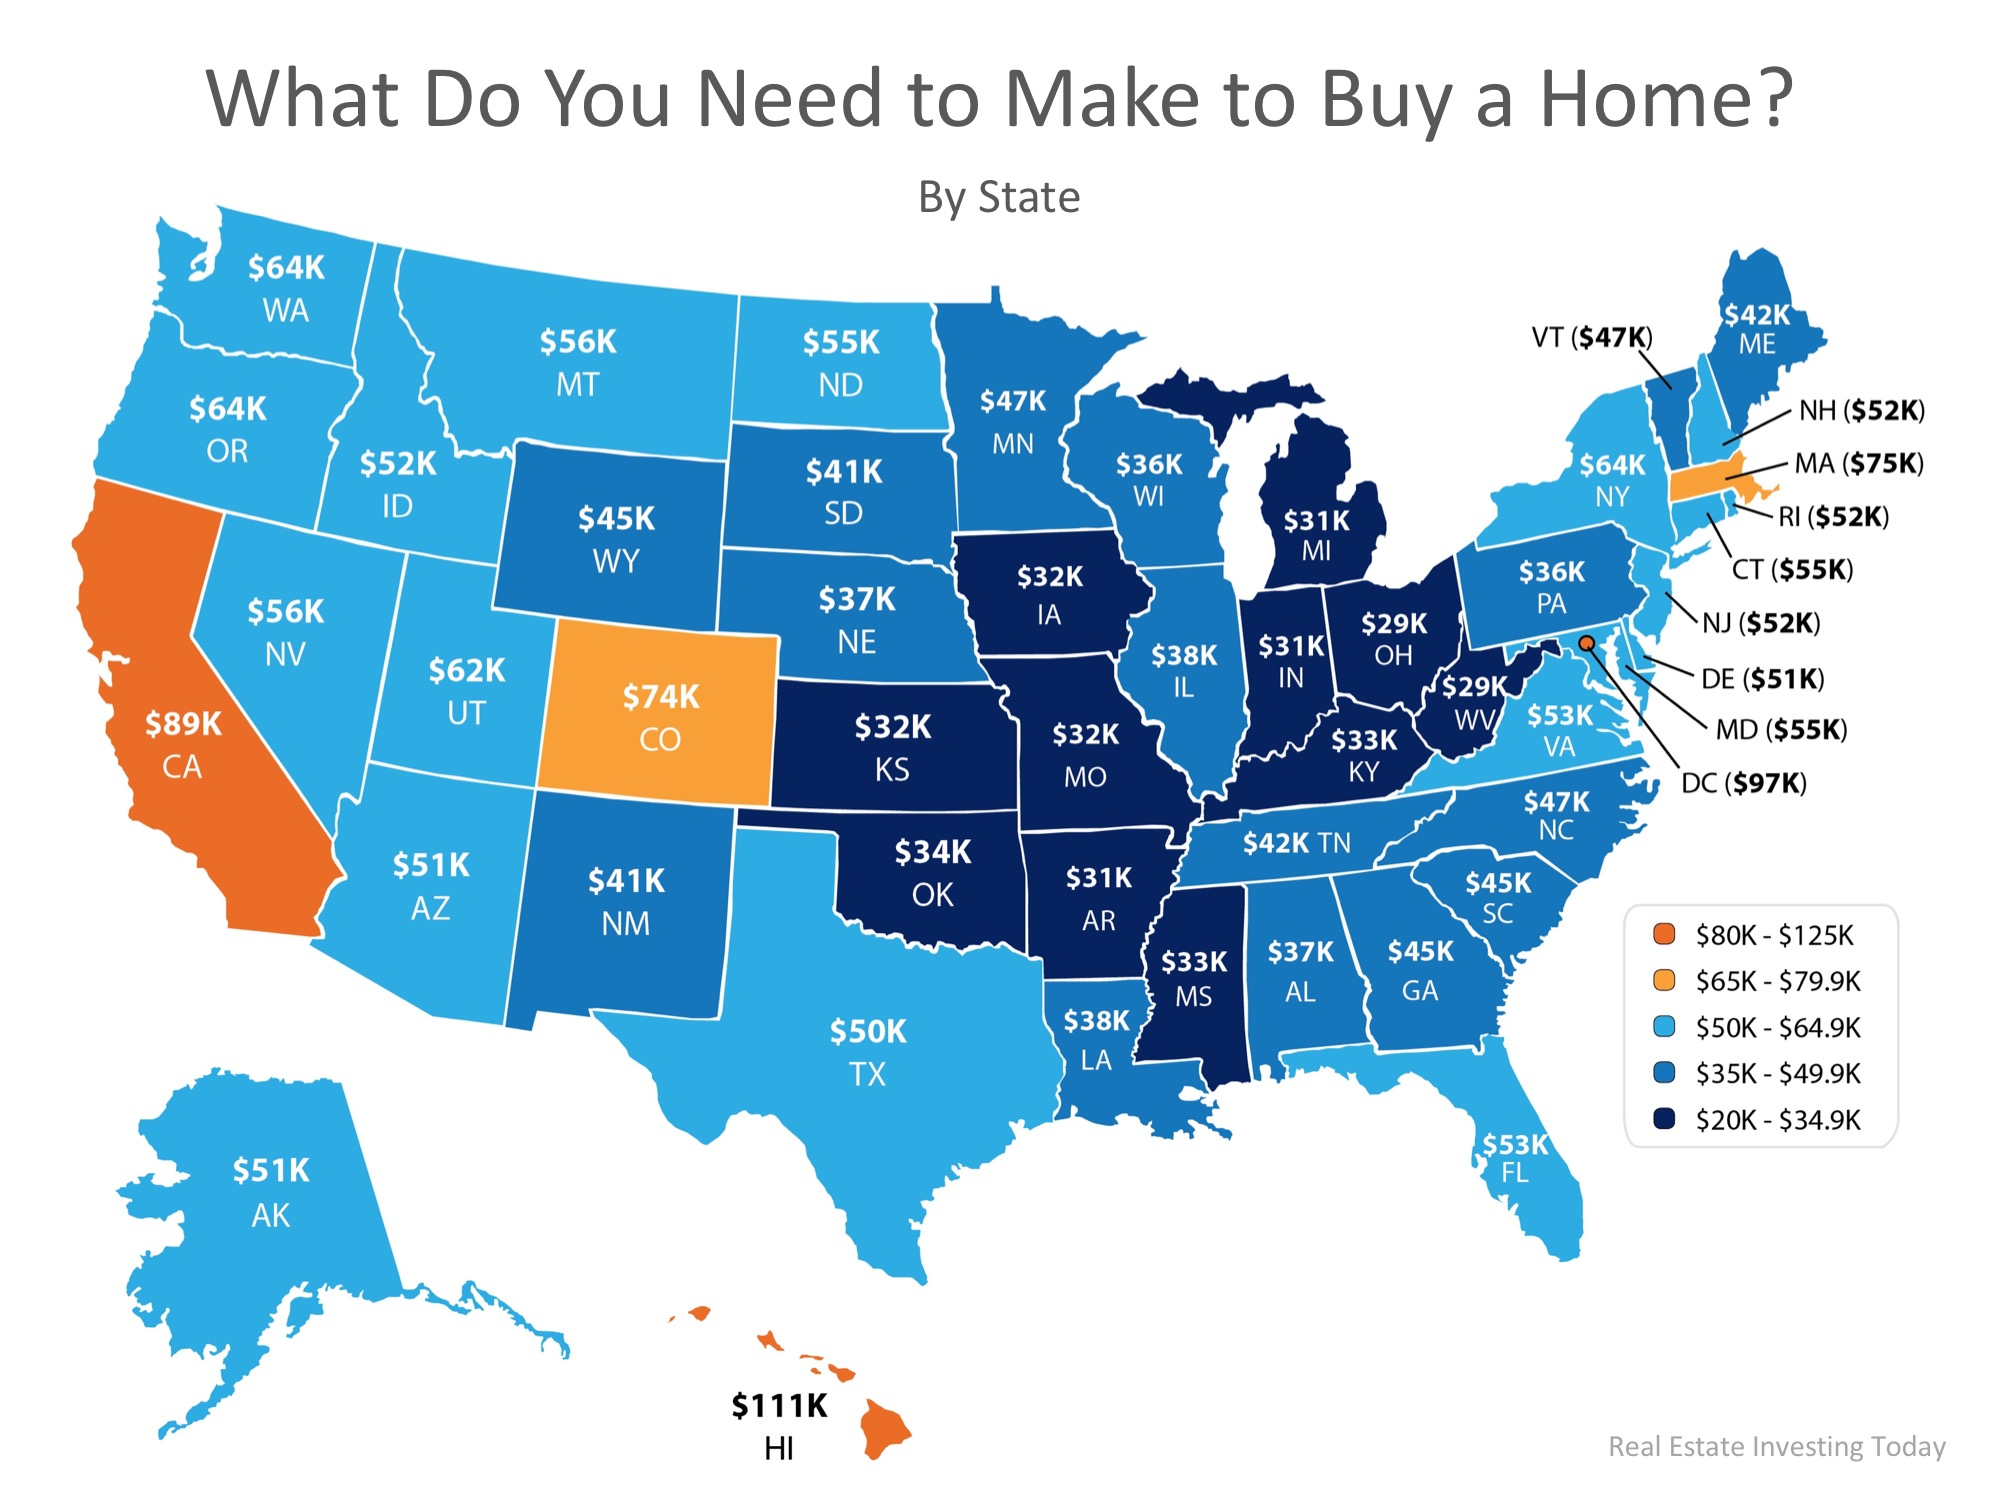 How Much Do You Need to Make to Buy a Home in Your State? | Bridge Builders